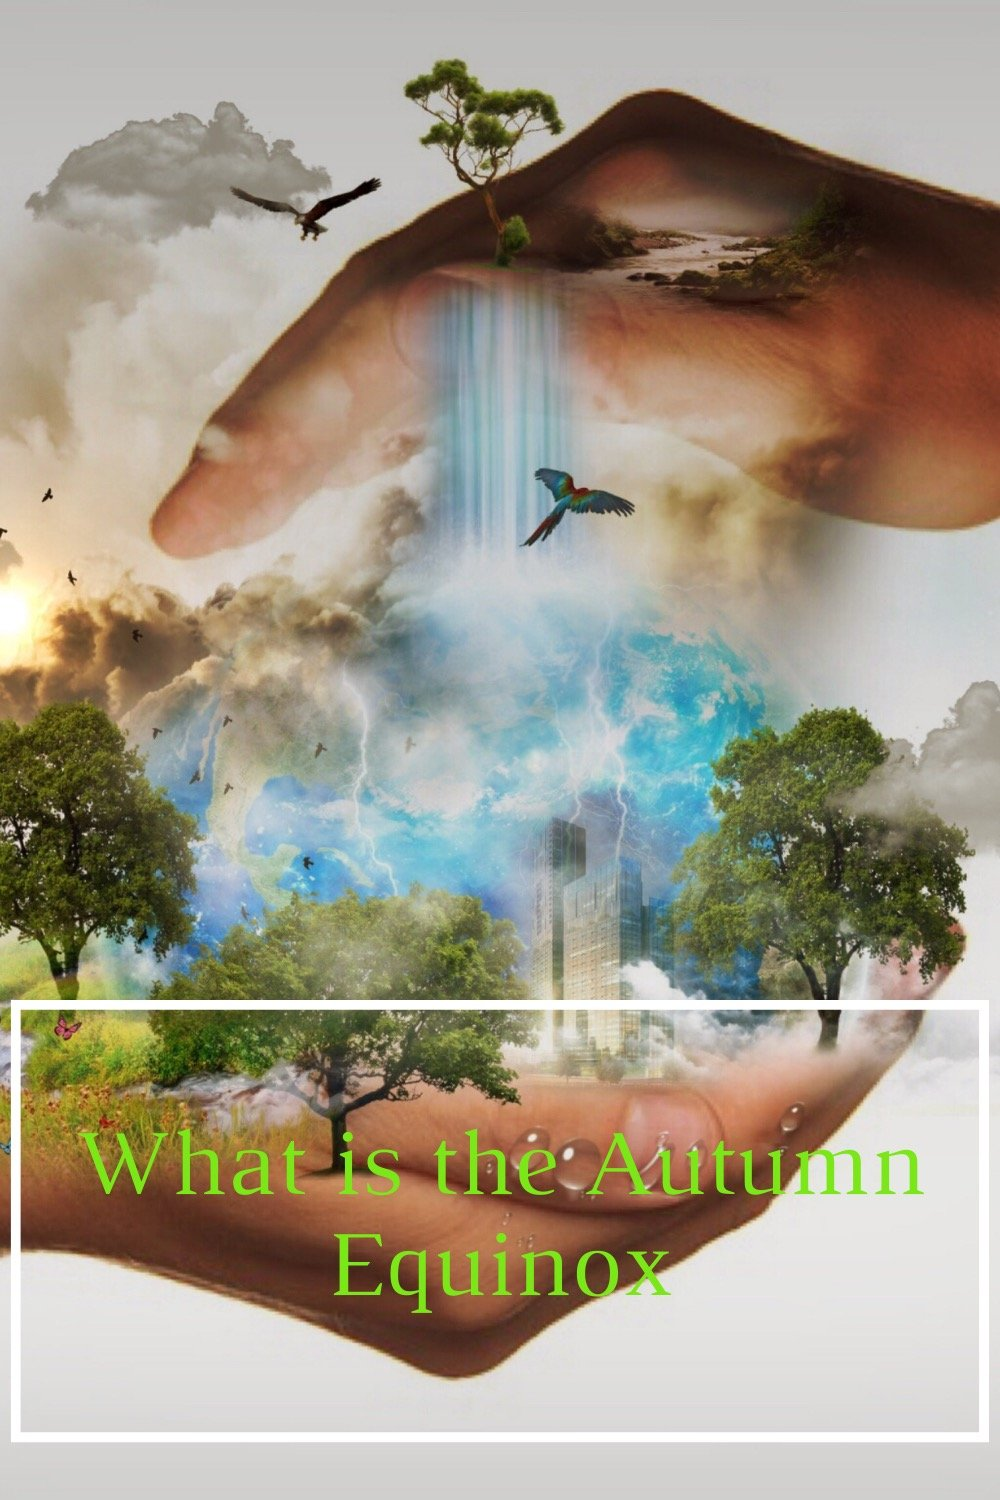 Two hands one above the other in a clasping motion with trees and other nature items which indicates nature